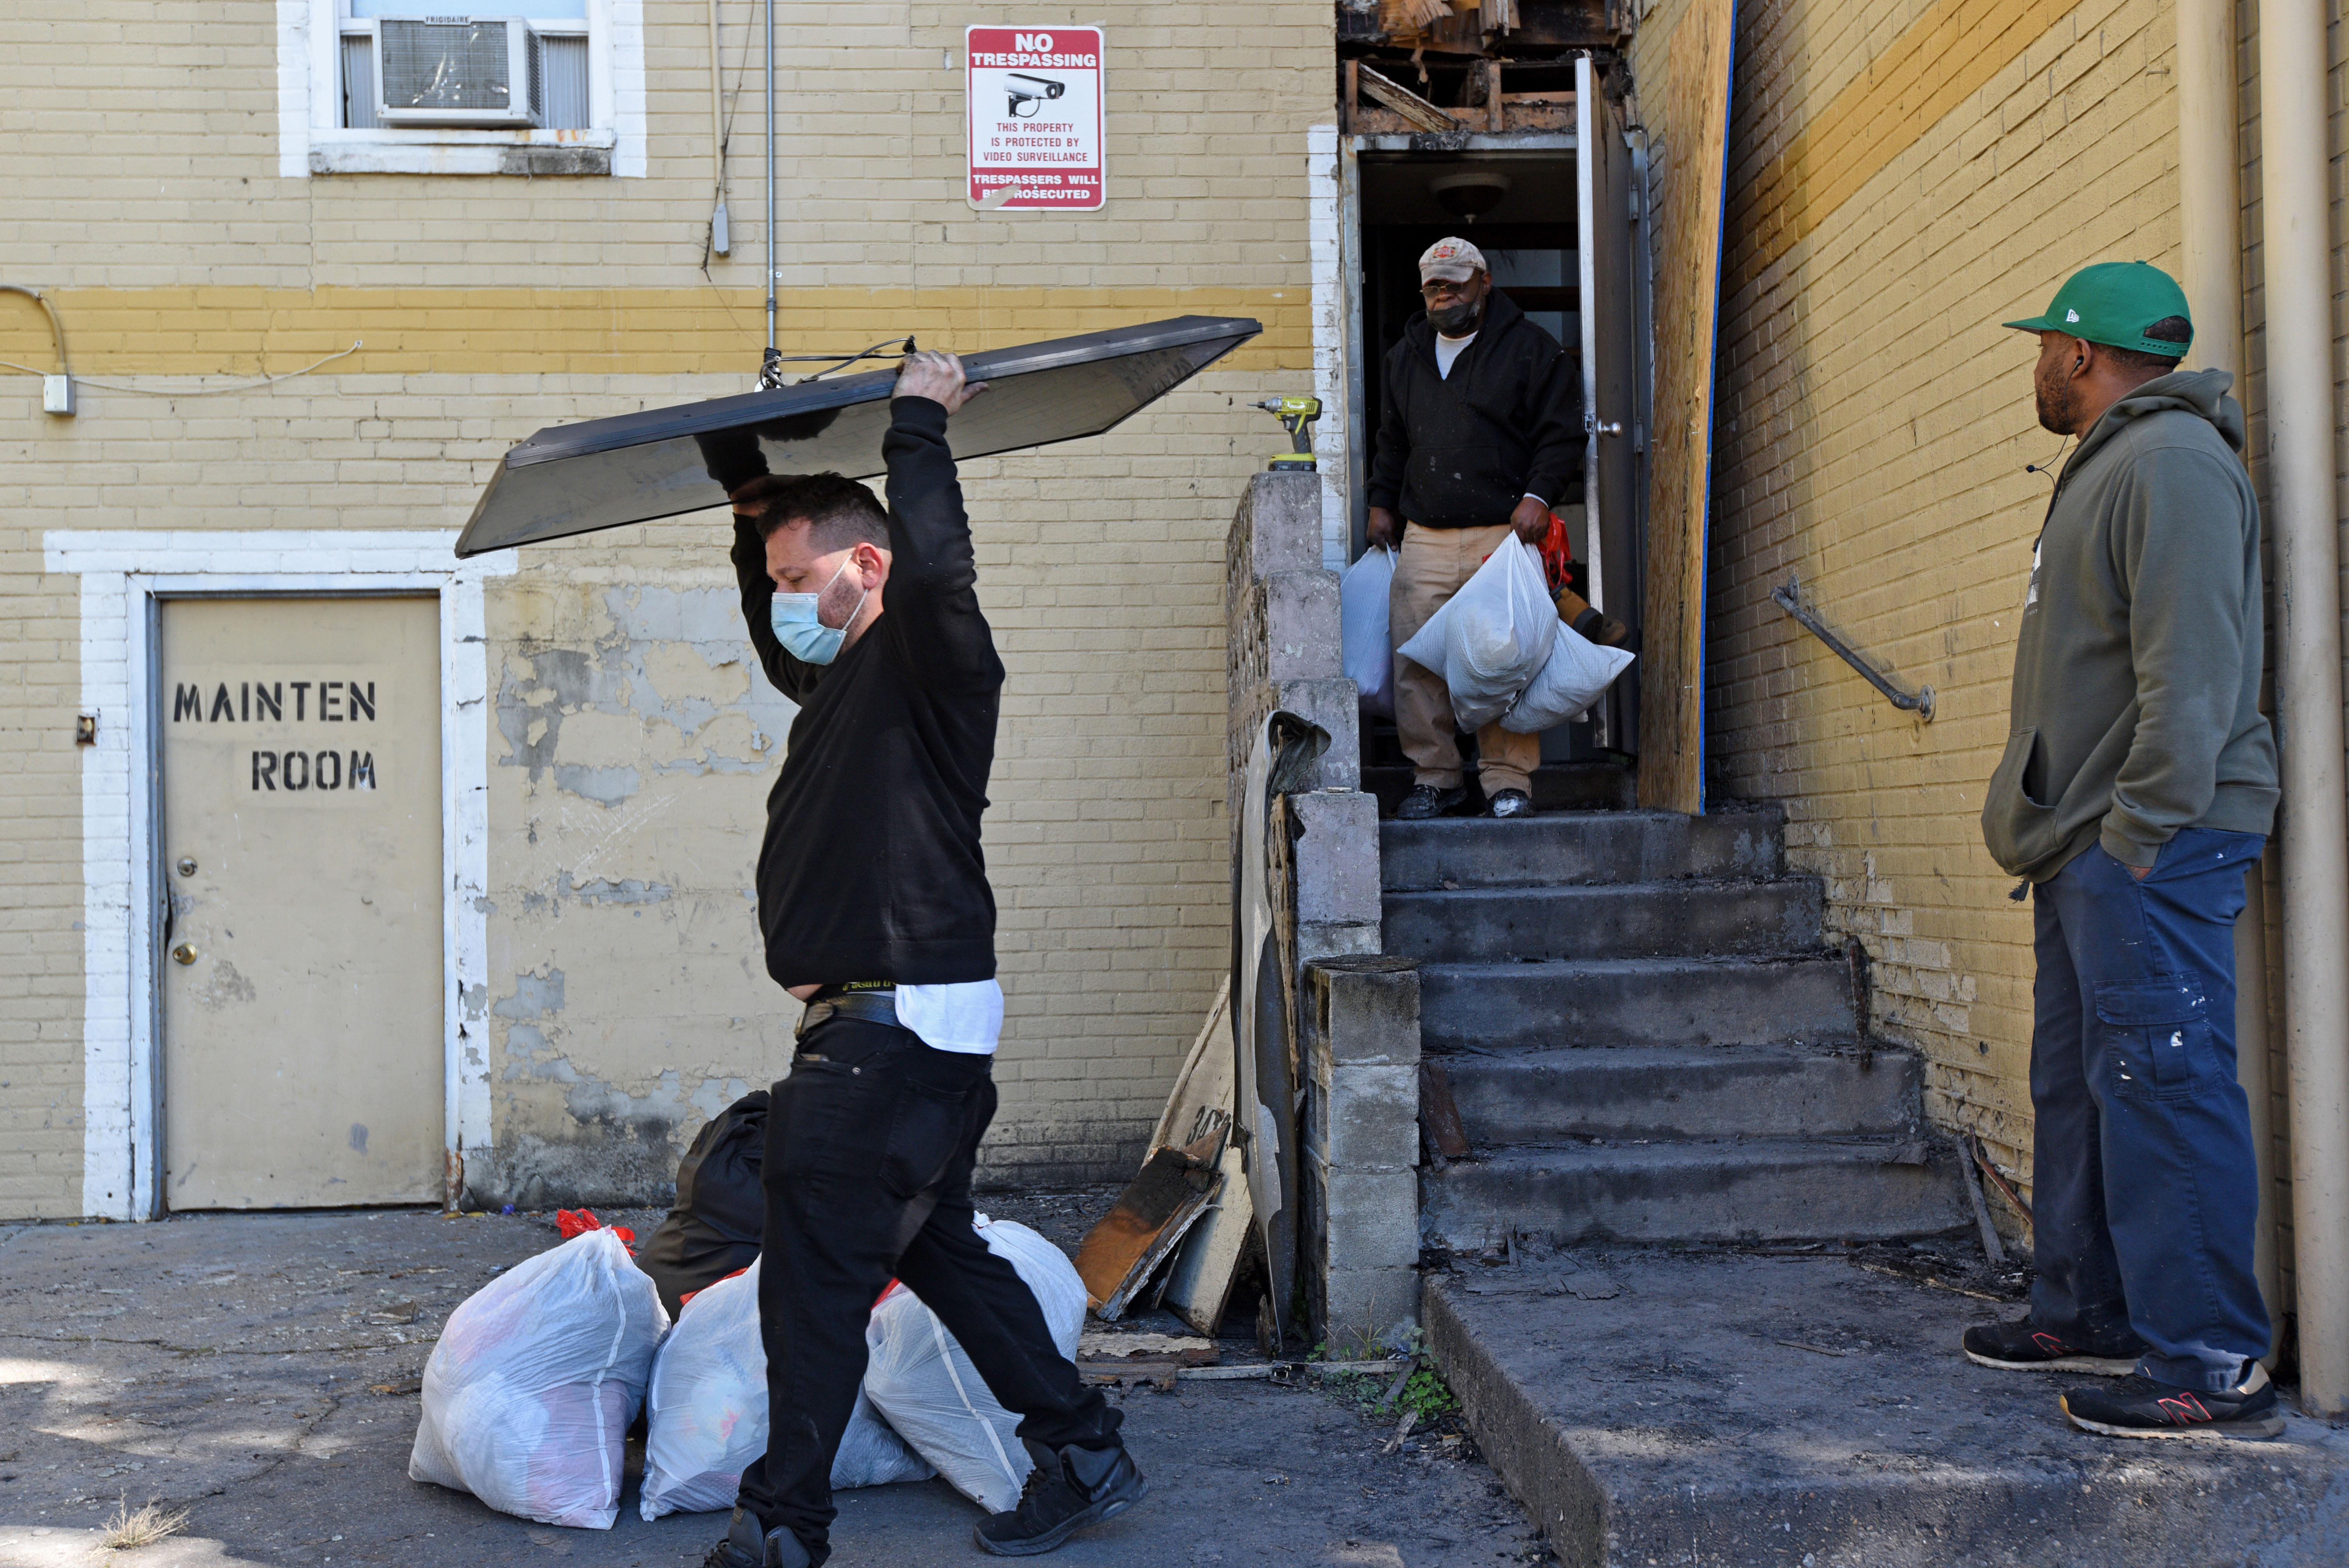 Tenants remove belongings from their apartments